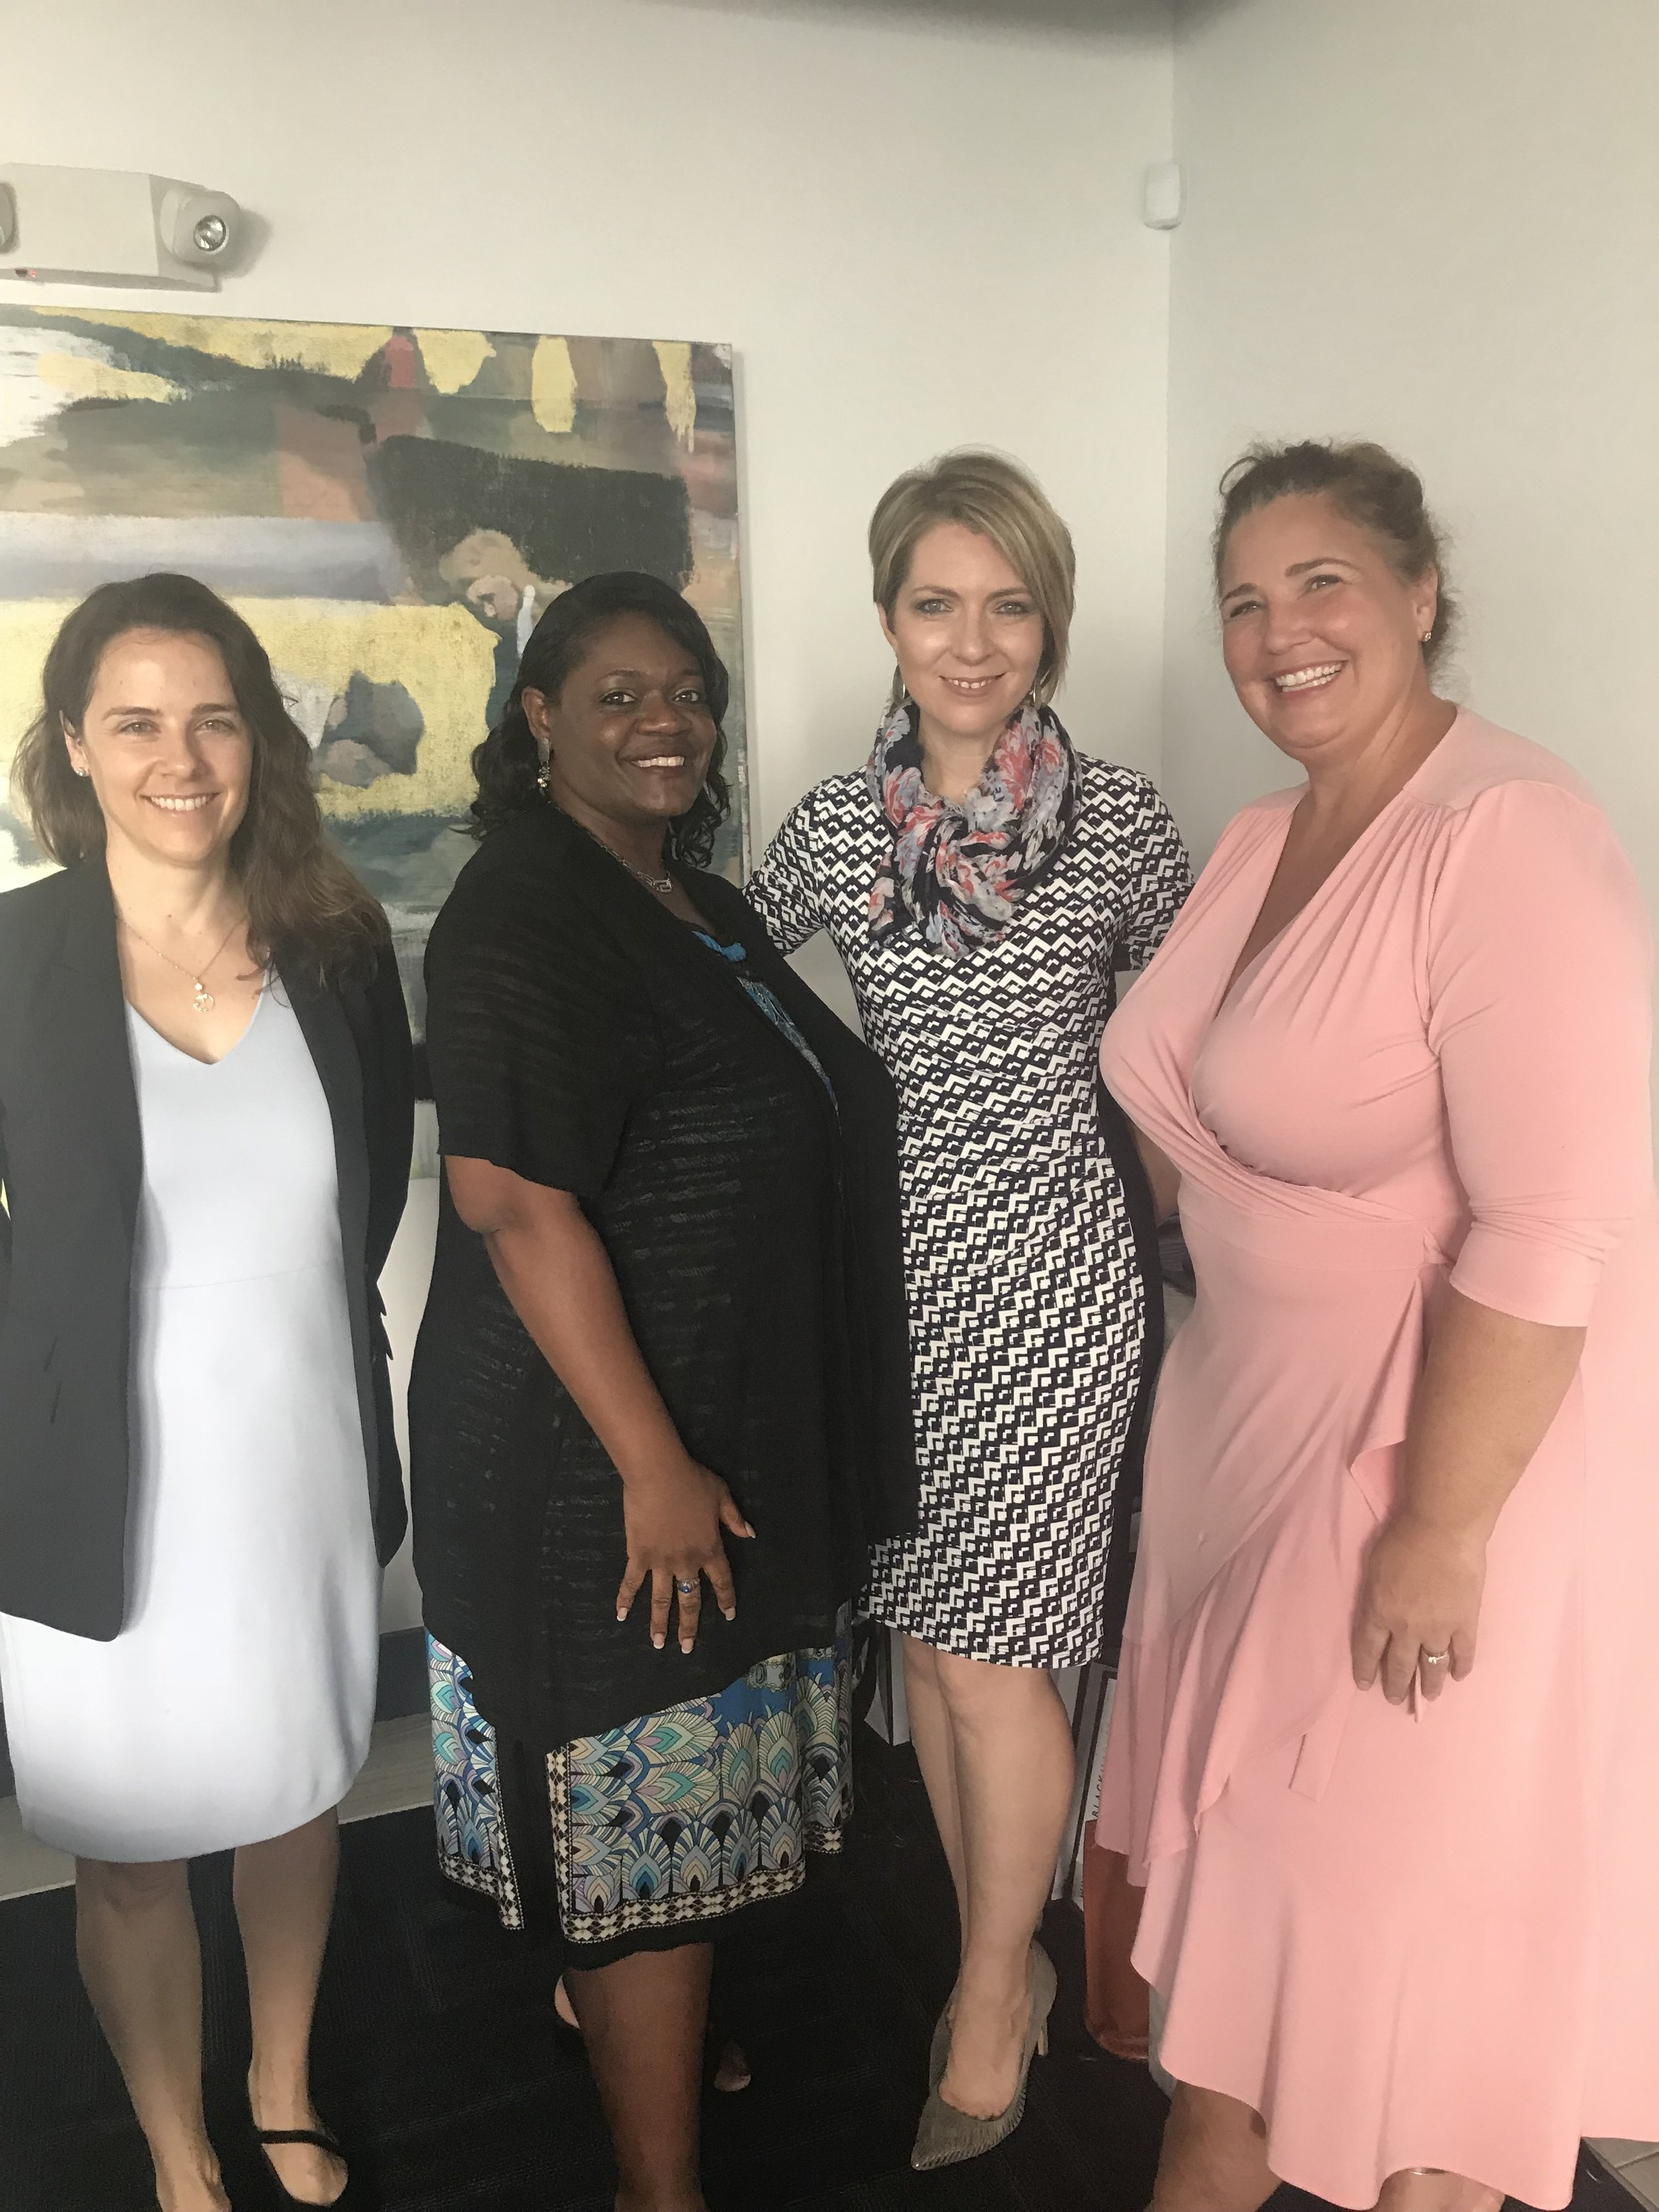 Emily Slaby, Barbara Melvin, Erica Castner and Kristy Knupp at the Dress for Success SW Florida WETES Graduation at Welch Companies of Florida on August 21, 2018